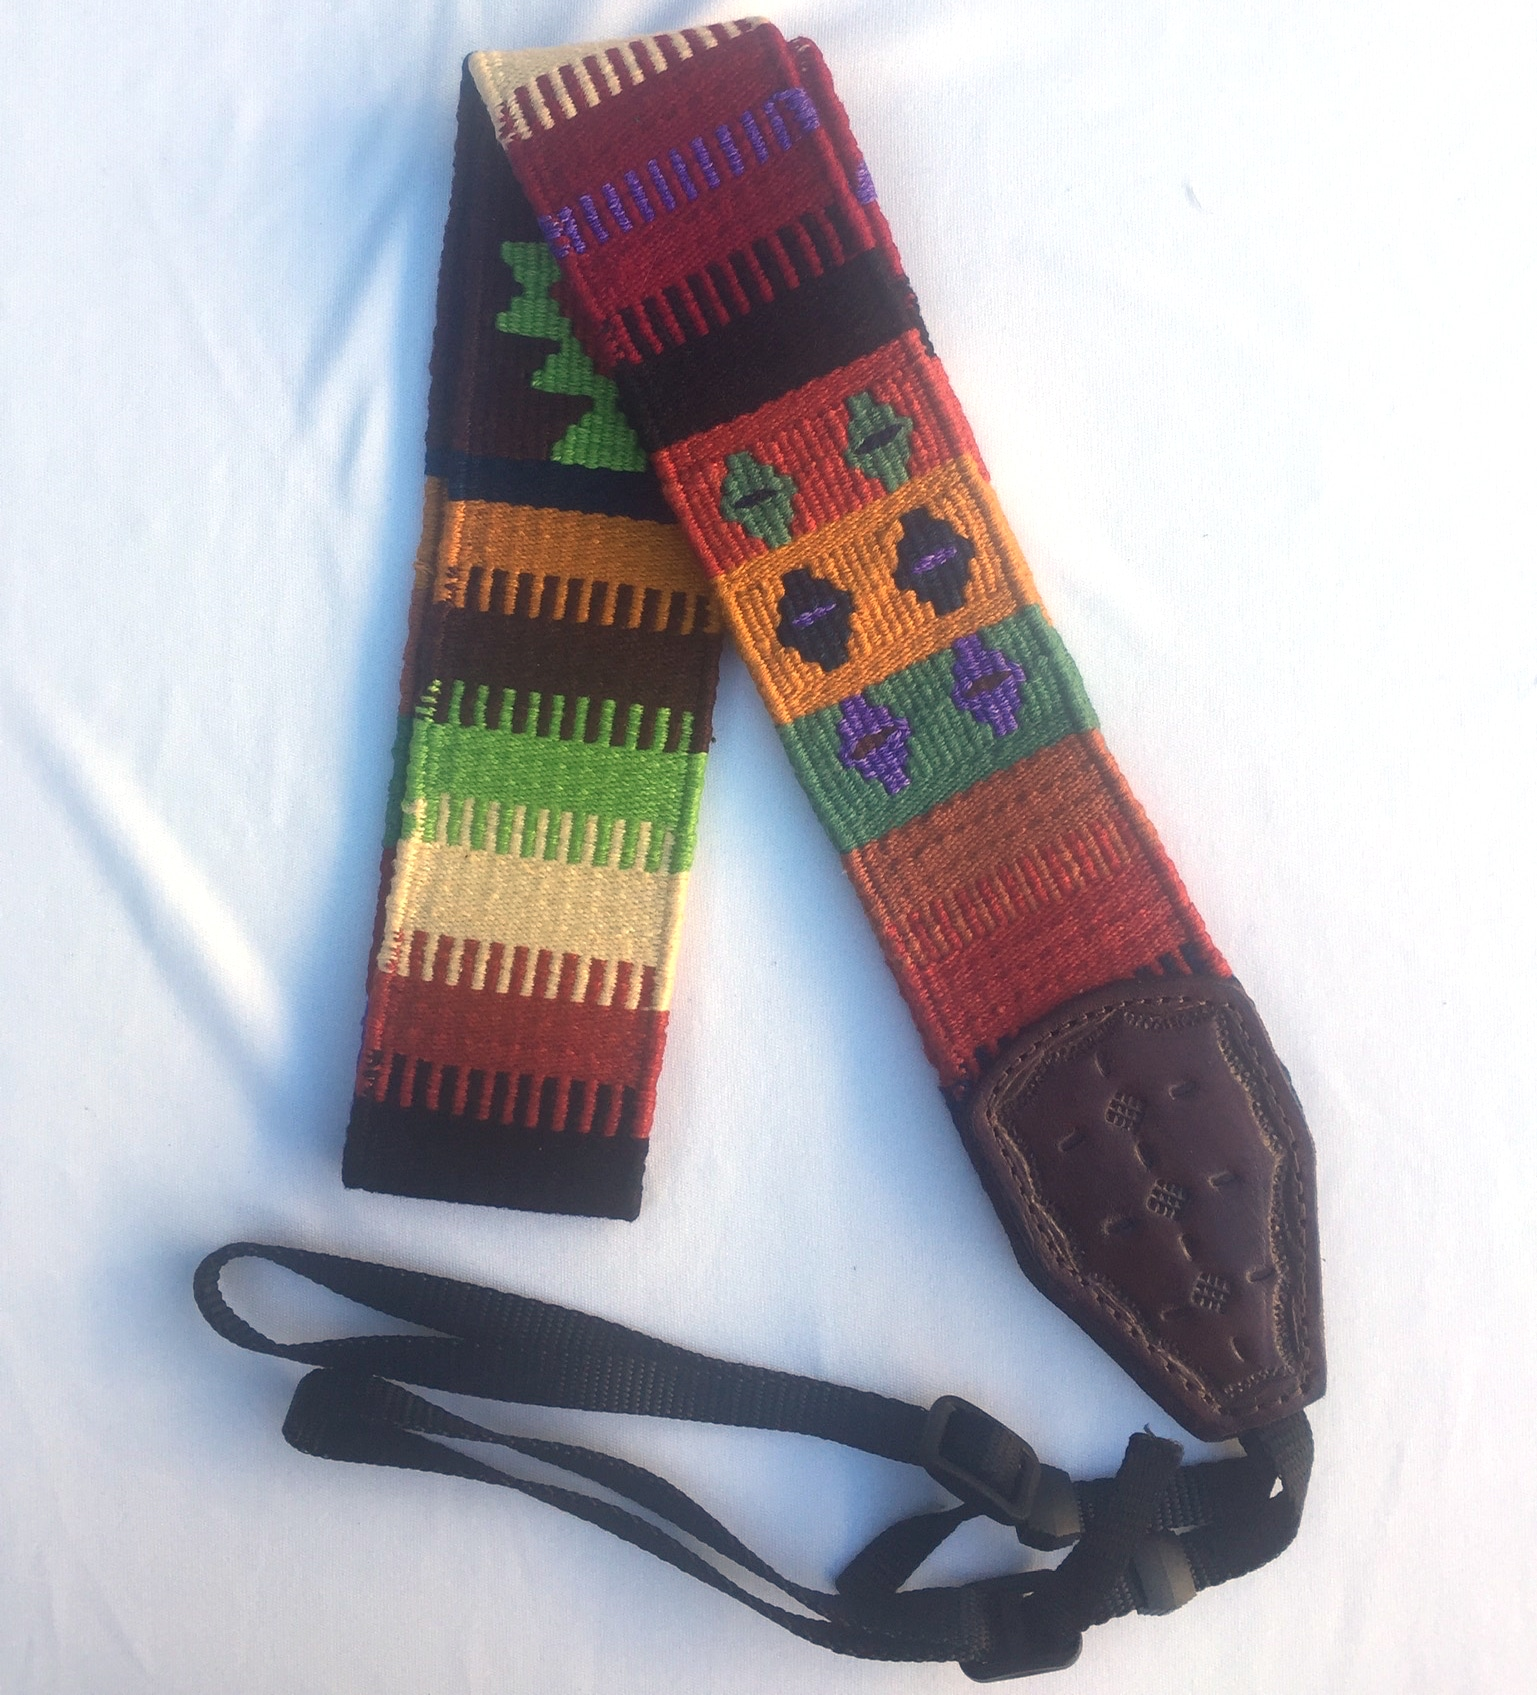 Handwoven Cotton and Leather Camera Strap - Autumn with Pale Green and Purple with Diamonds and Geometric Designs